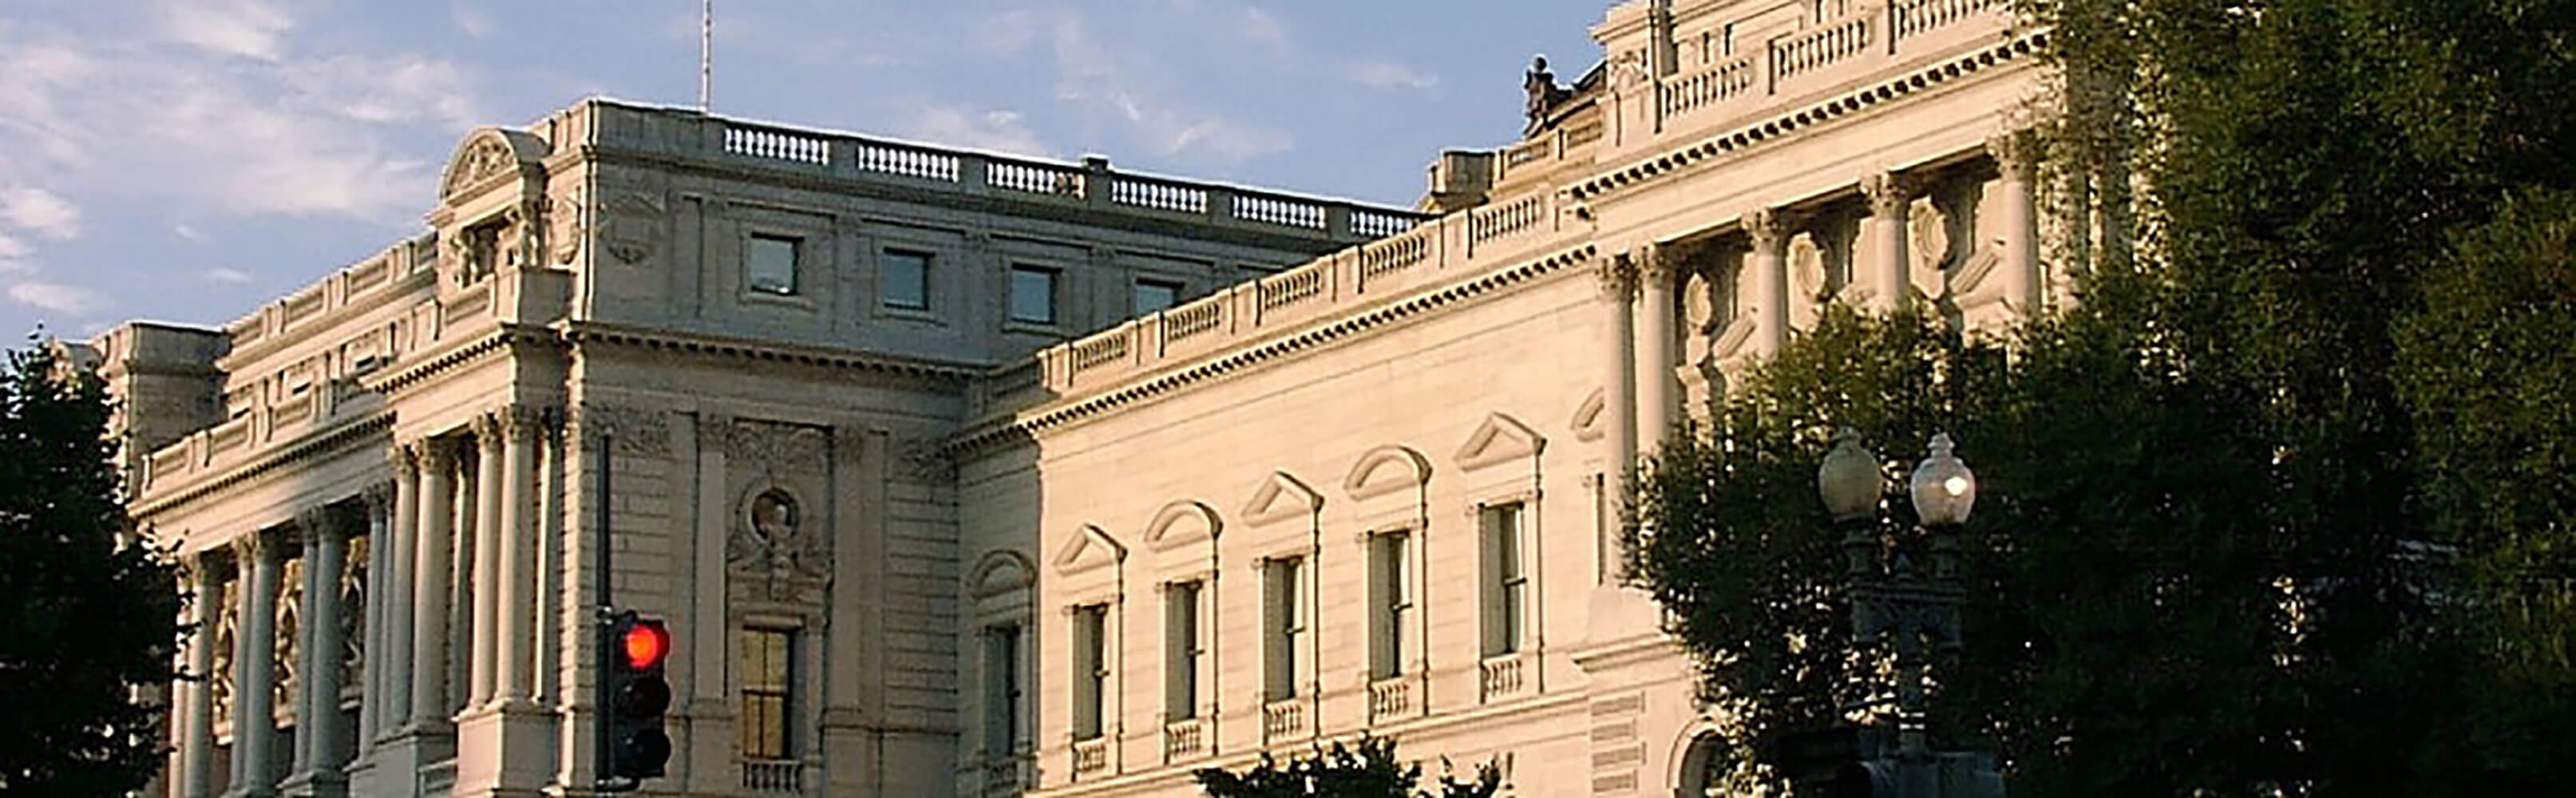 Library of Congress 1